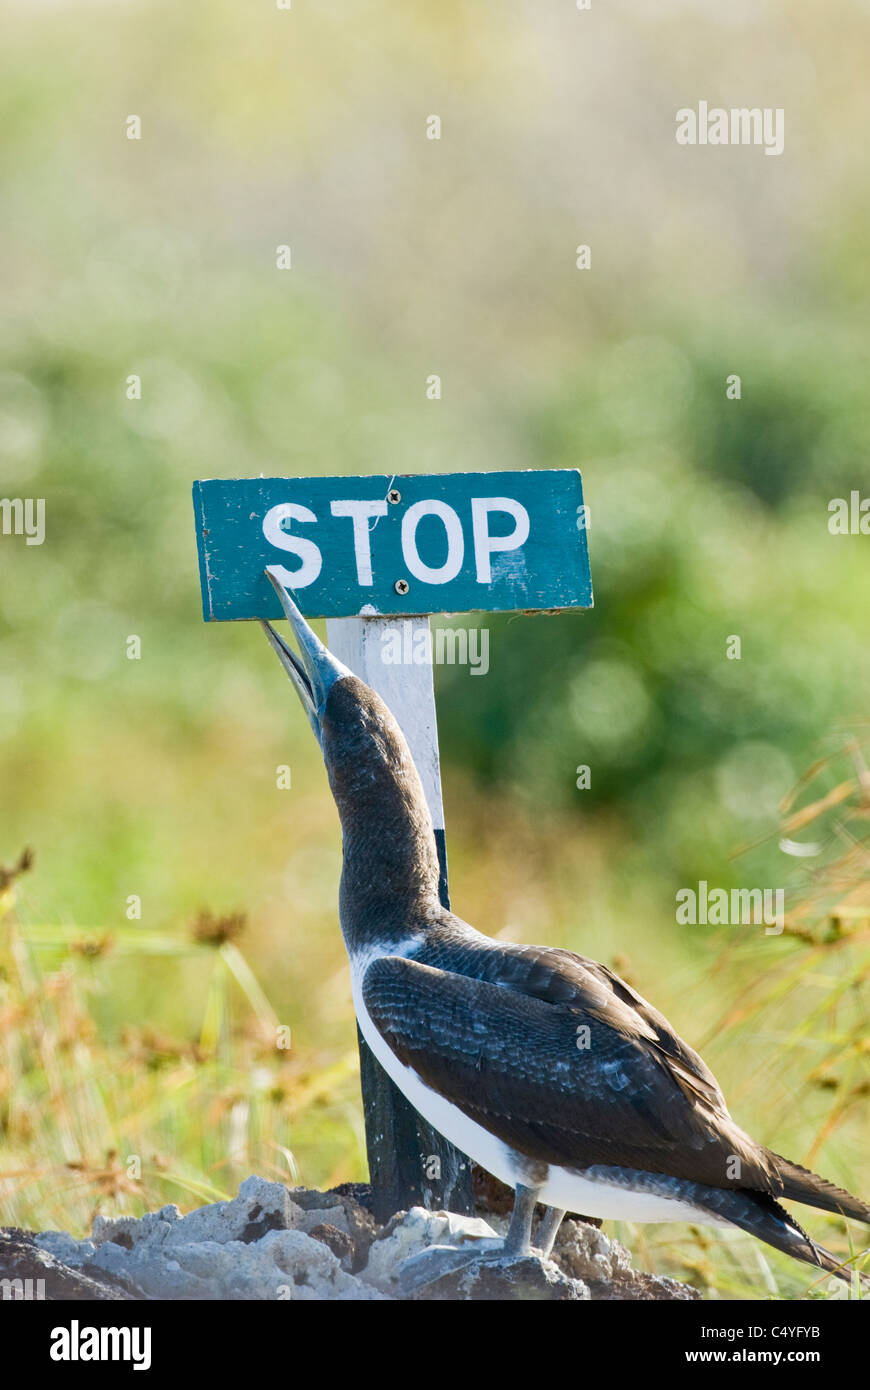 Blue-footed booby and end-of-trail stop sign on Genovesa Island in the Galapagos Islands Ecuador - Stock Image